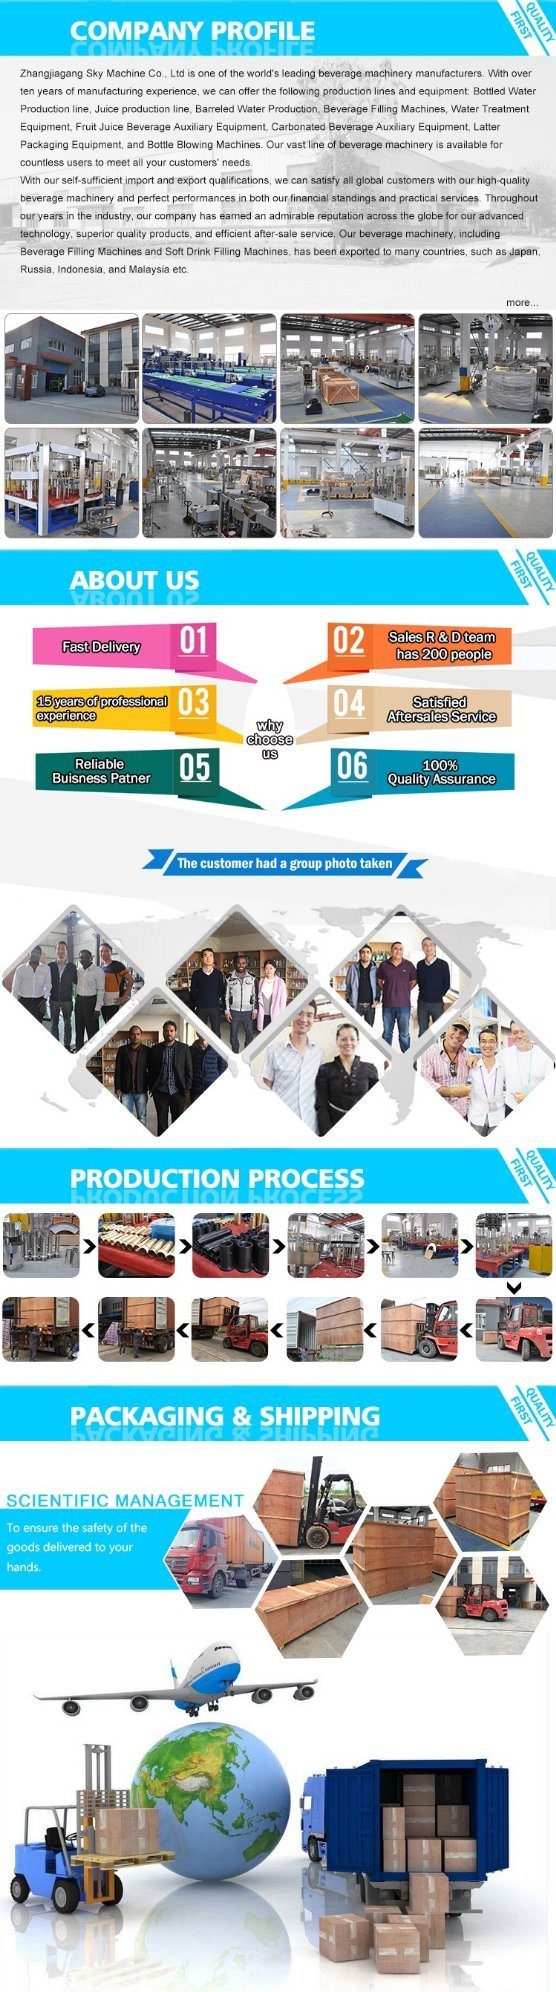 160ton PVC Pipe Fitting Injection Moulding Making Machine